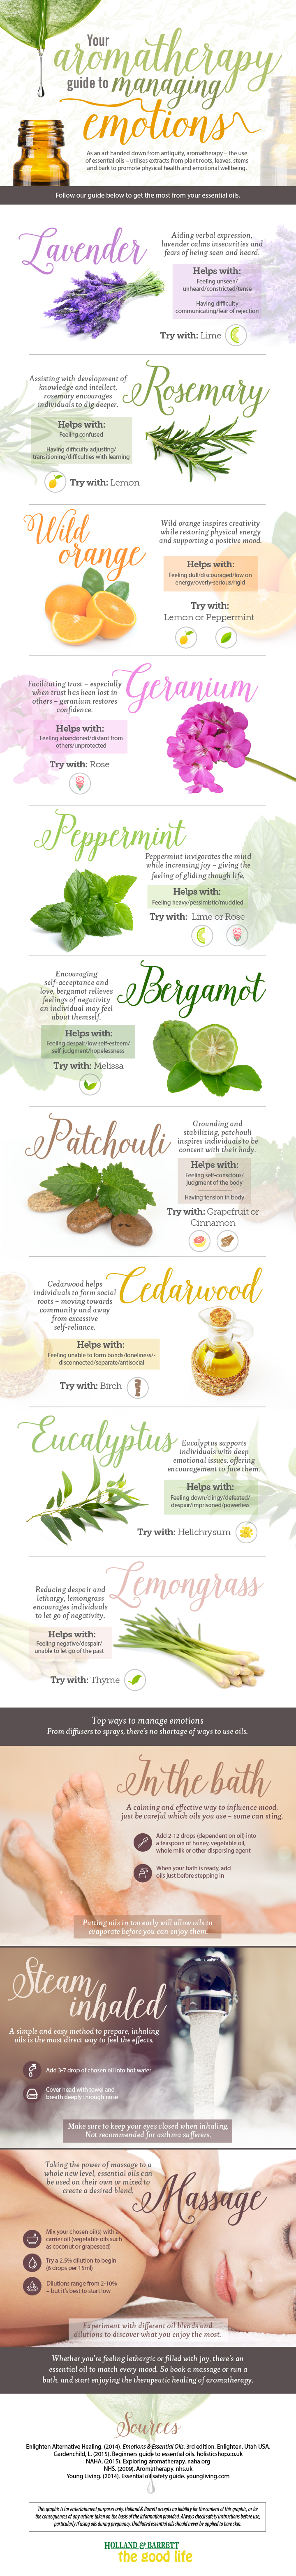 Your Aromatherapy Guide To Managing Emotions.Jpg